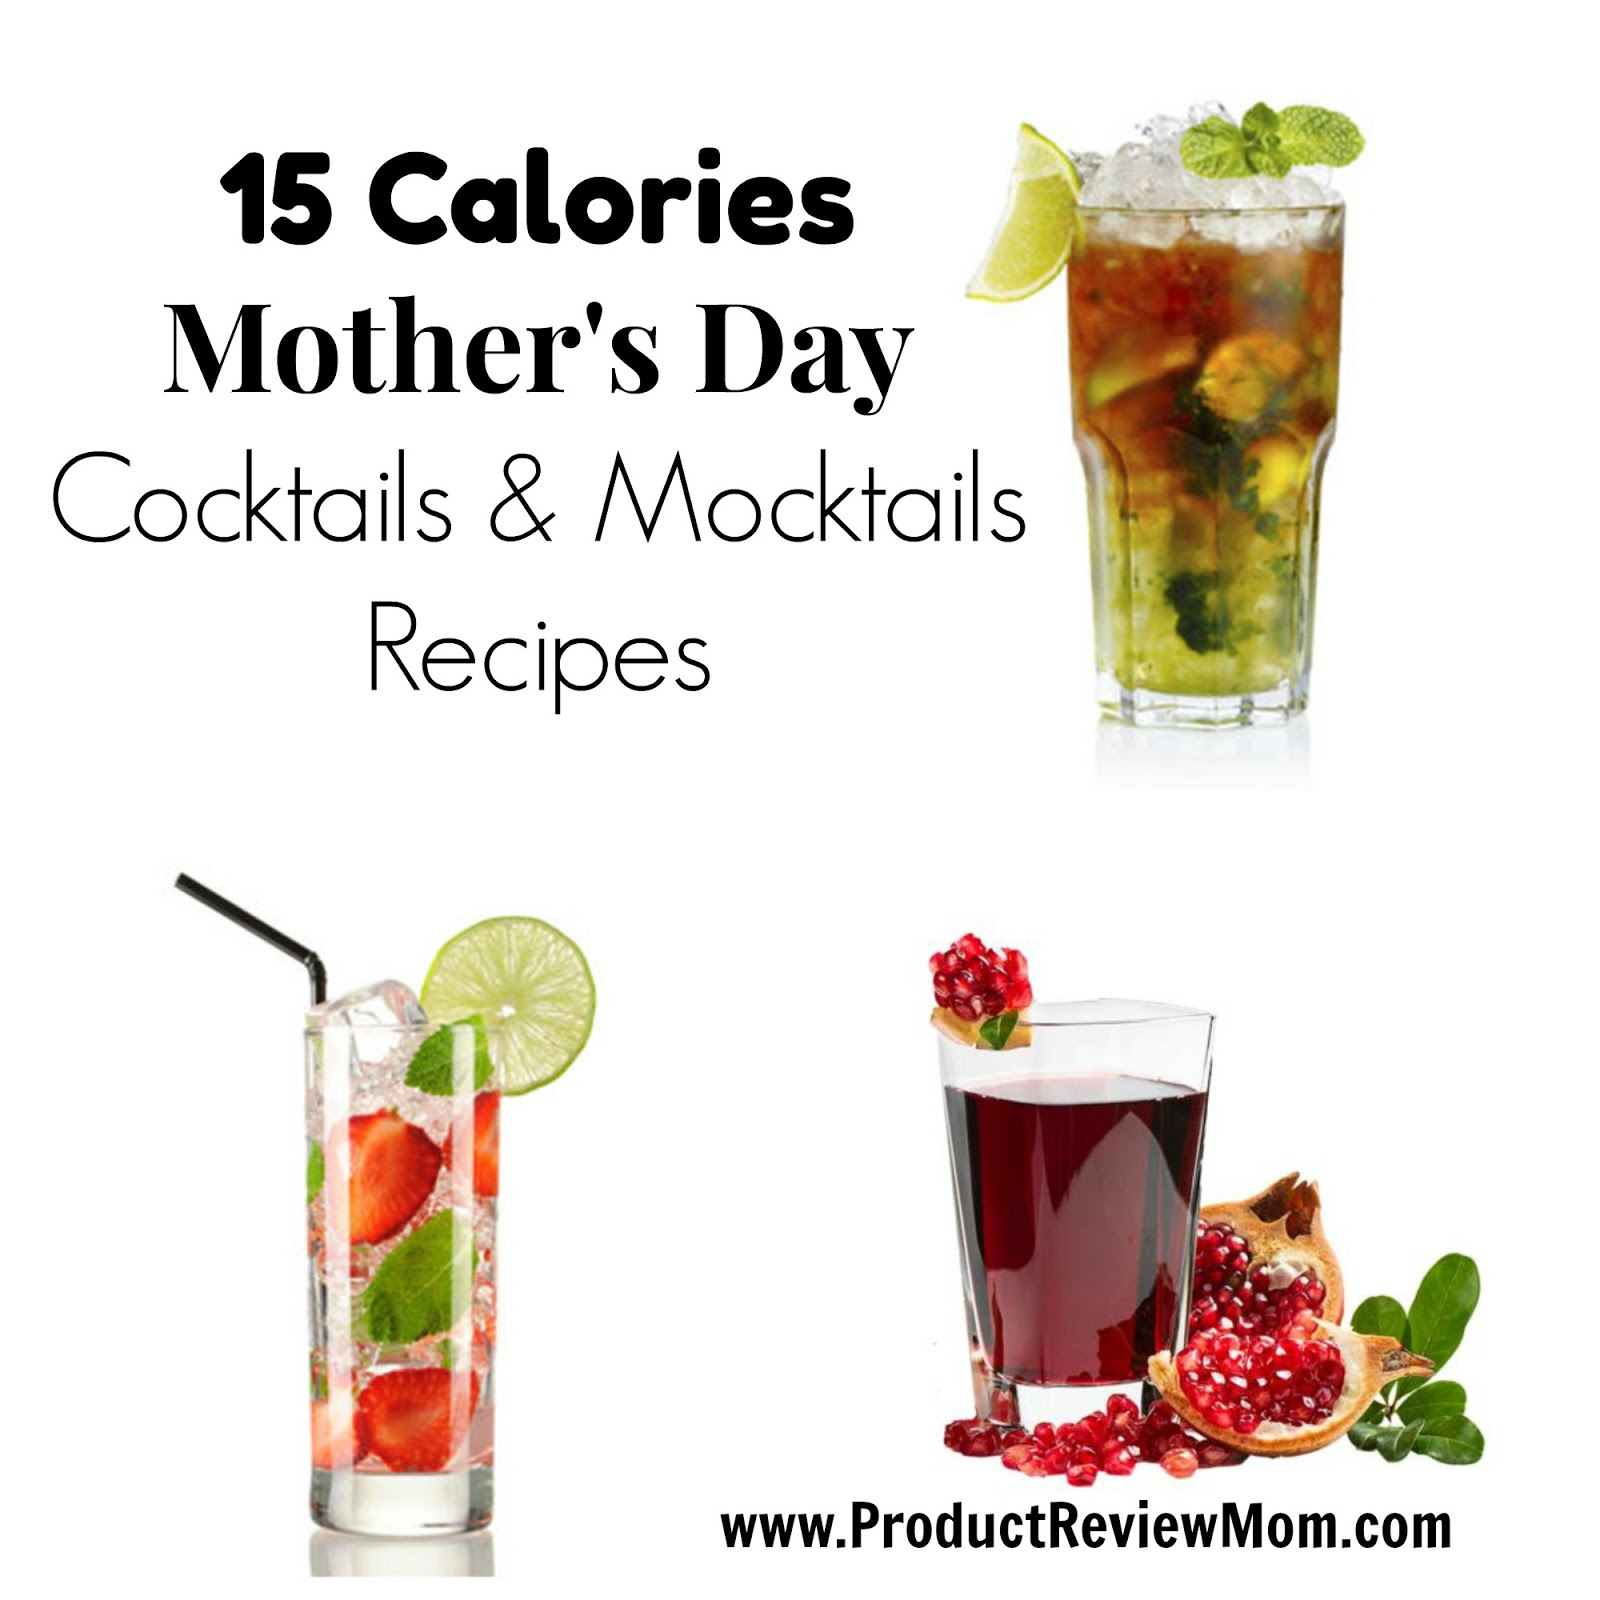 15 Calories Mother's Day Cocktails and Mocktails Recipes  via  www.productreviewmom.com